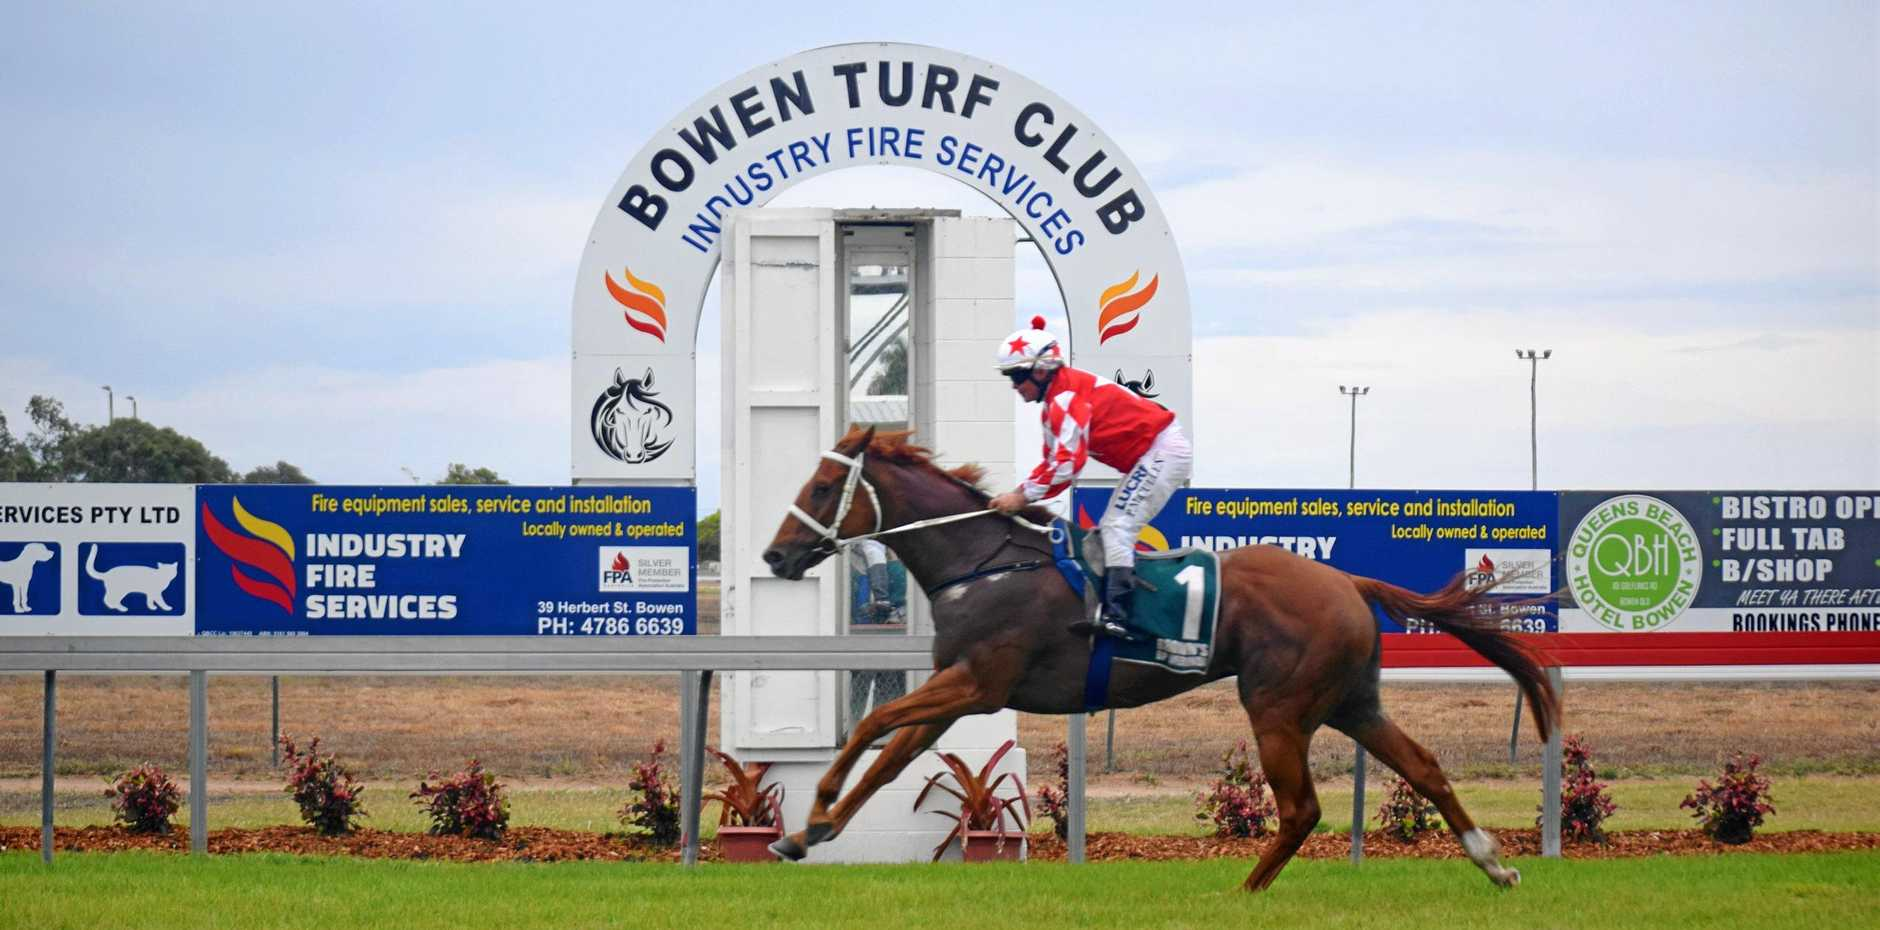 Bowen Turf Club has been granted a further two TAB race days following the success of their first earlier this month.